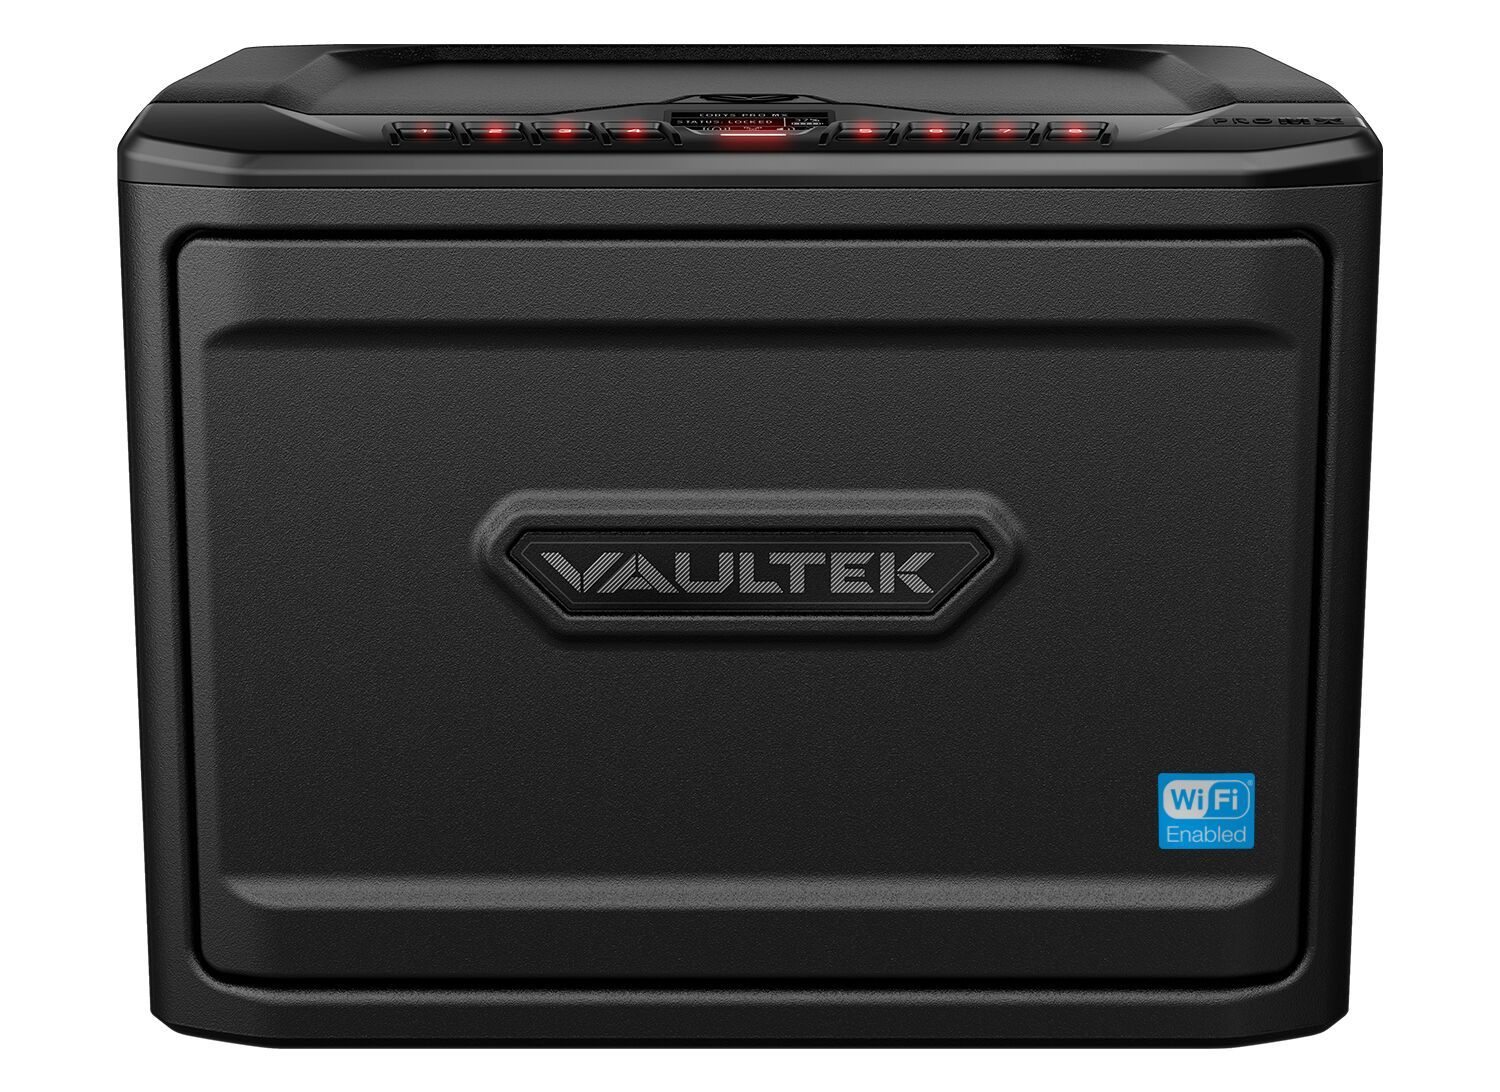 Handgun And Pistol Safes - Vaultek MX-WiFi Large Capacity Rugged Wi-Fi Smart Safe